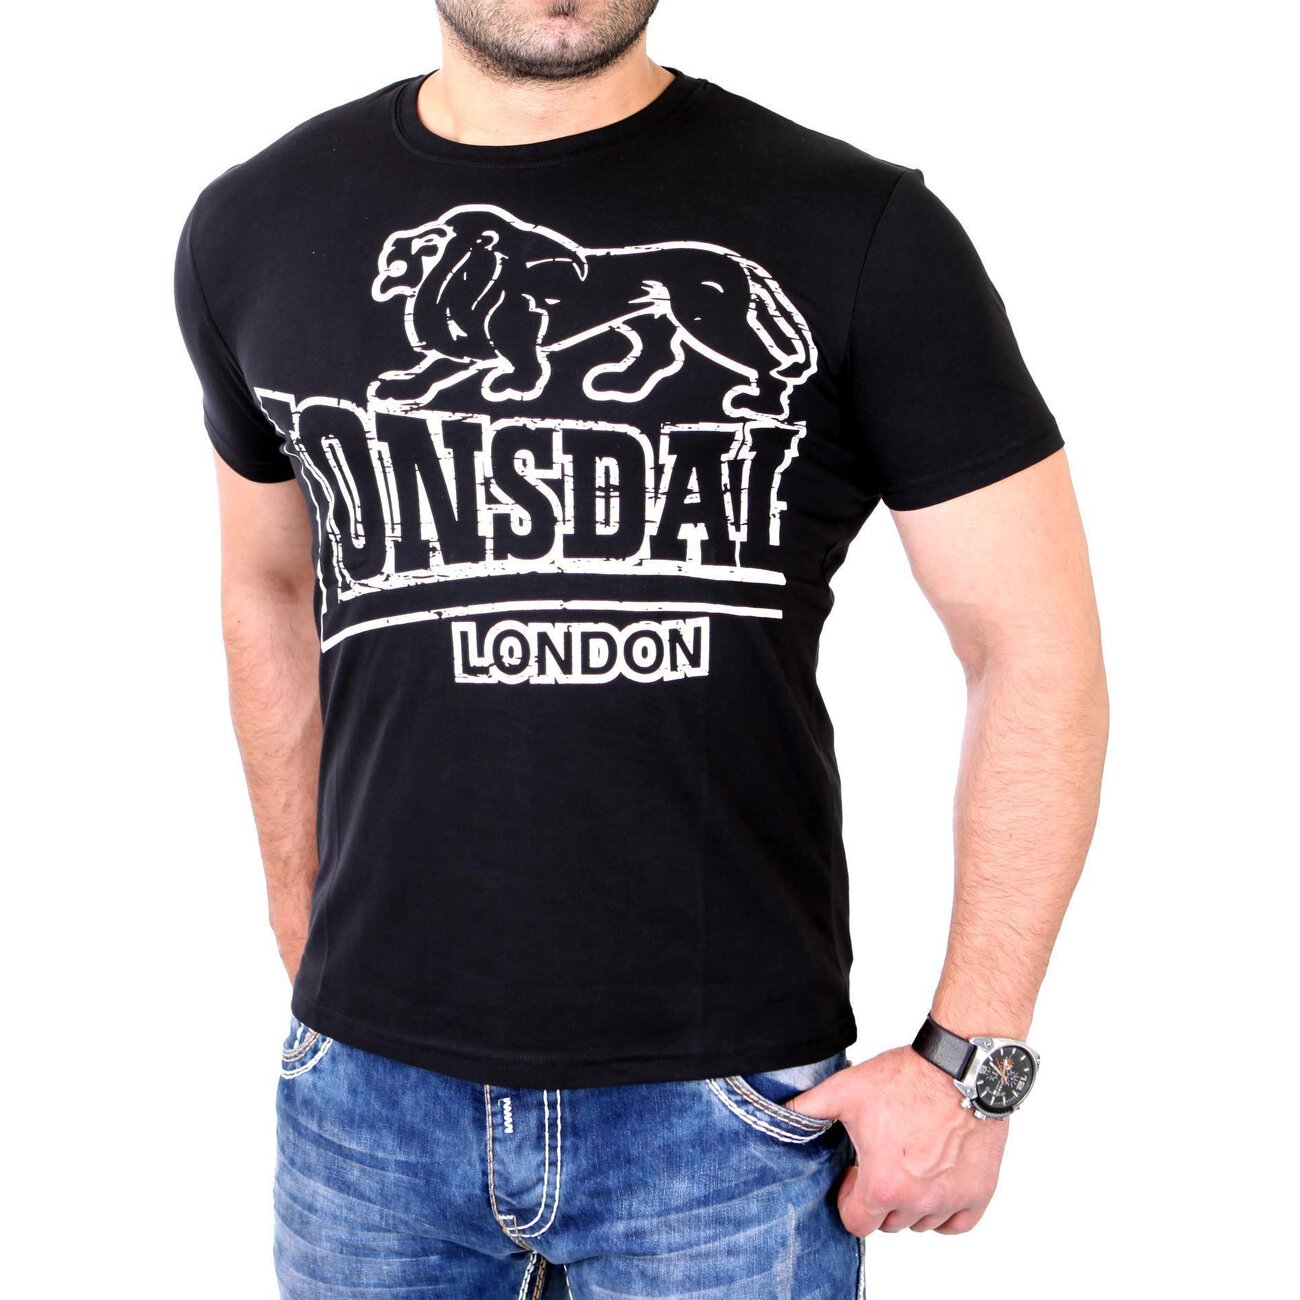 lonsdale t shirt herren langsett regular fit shirt ld 111262 schwarz. Black Bedroom Furniture Sets. Home Design Ideas